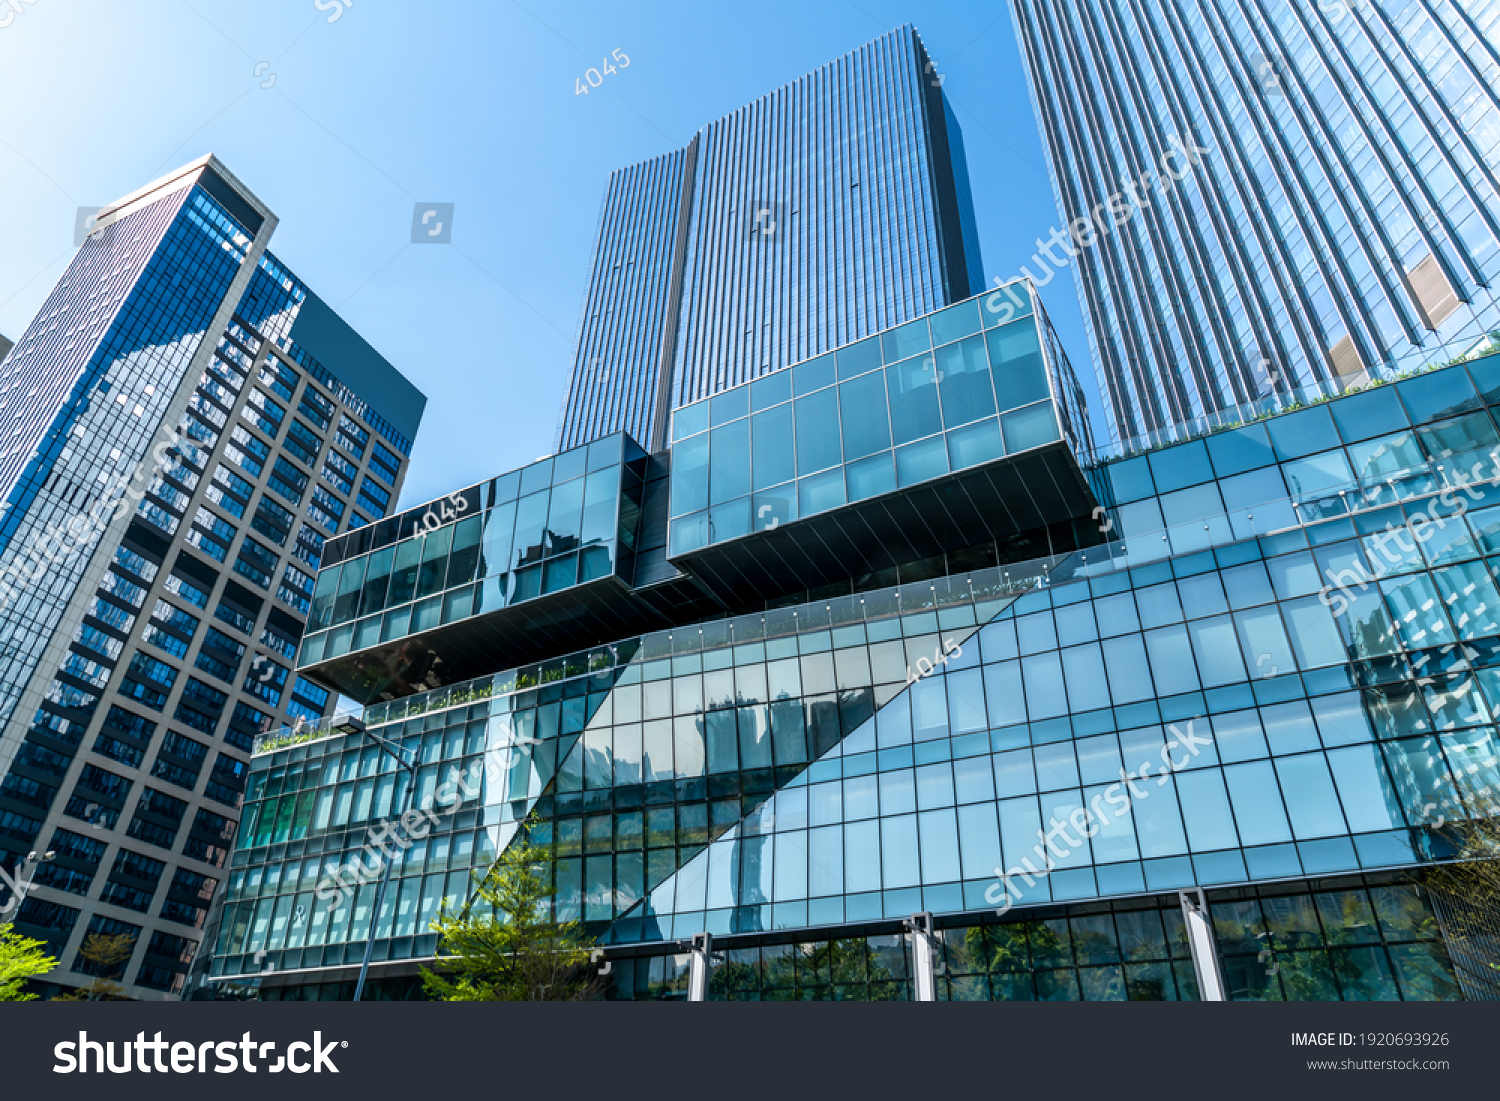 Looking up at the commercial buildings in downtown Guangzhou, Ch #1920693926